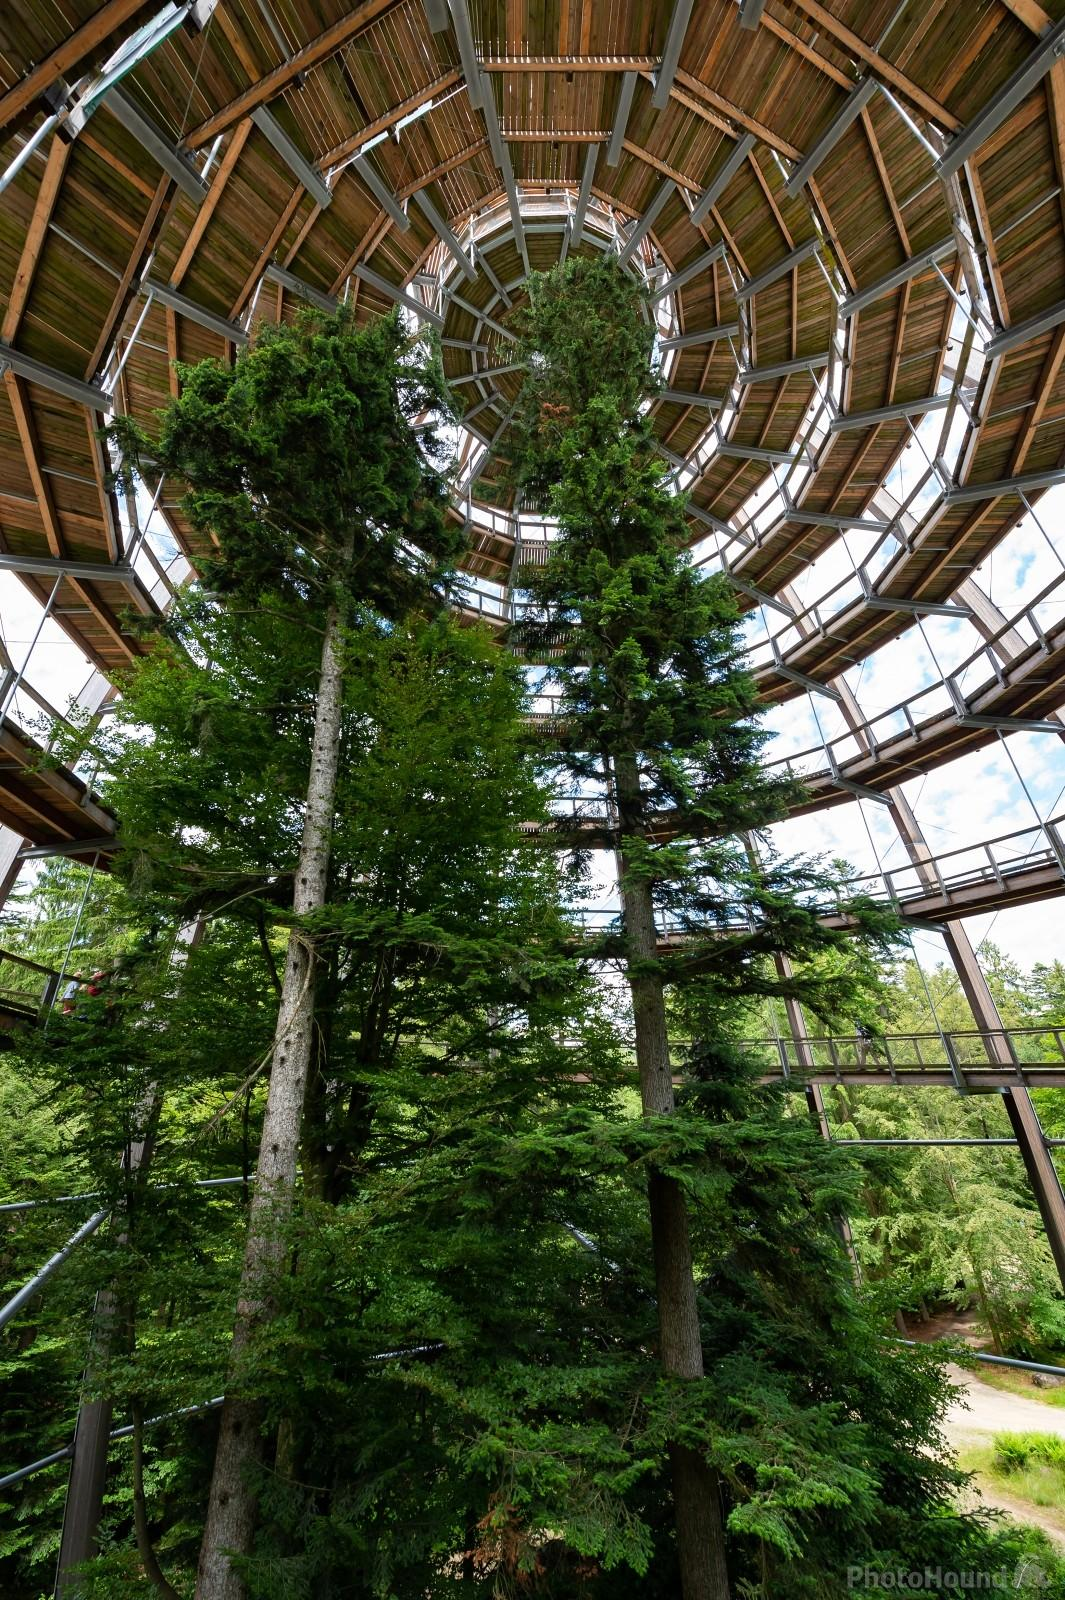 Interior of the observation tower of the Treetop Walk Bayerischer Wald